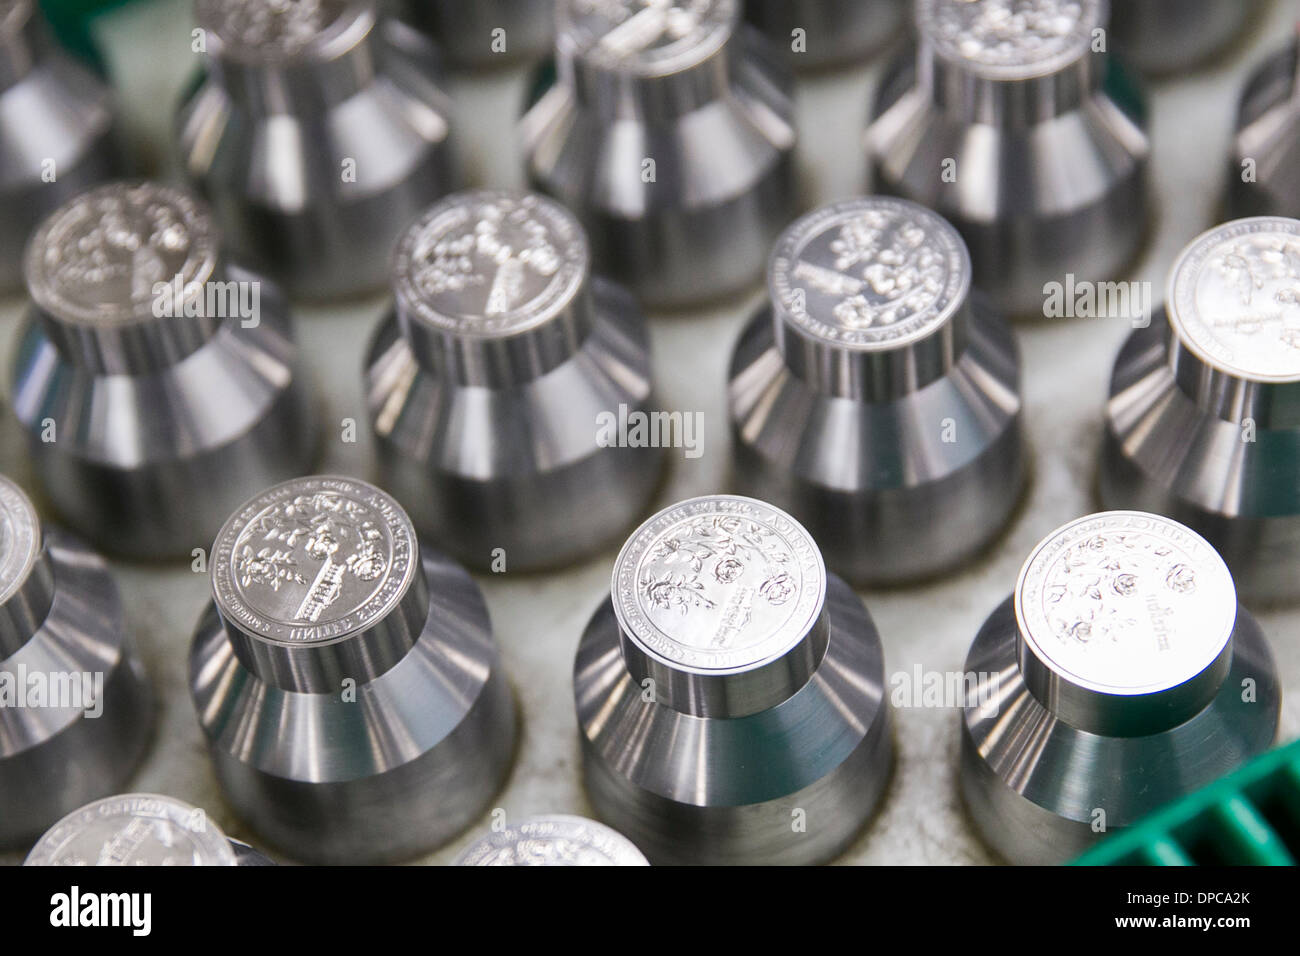 Quarter coin die manufacturing at the Philadelphia branch of the United States Mint.  Stock Photo